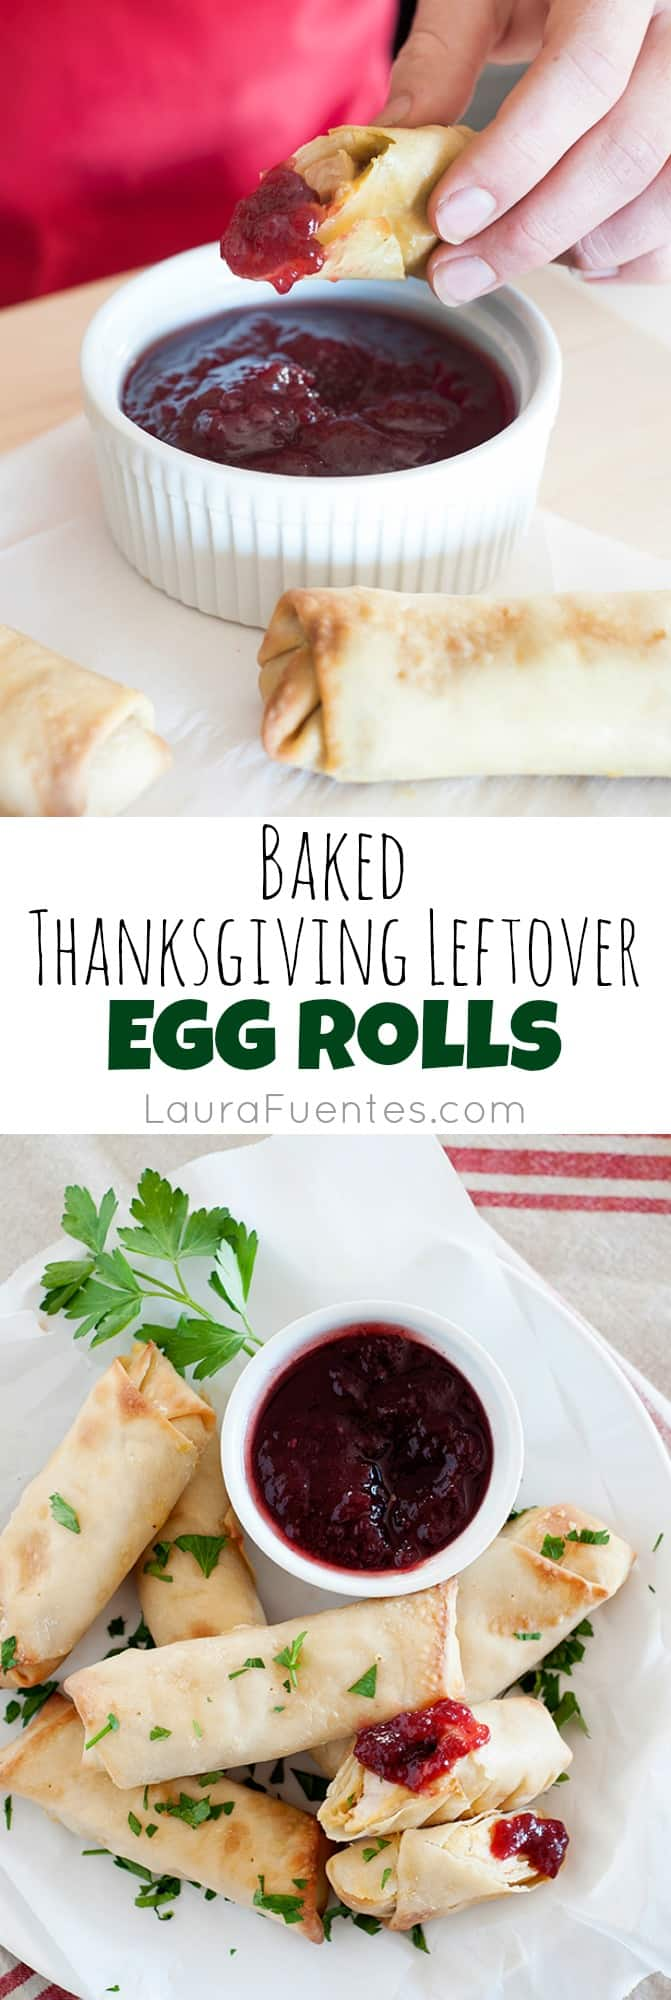 Thanksgiving Leftover Egg Rolls: Delicious and easy to make snack or appetizer with your favorite leftovers from Thanksgiving!